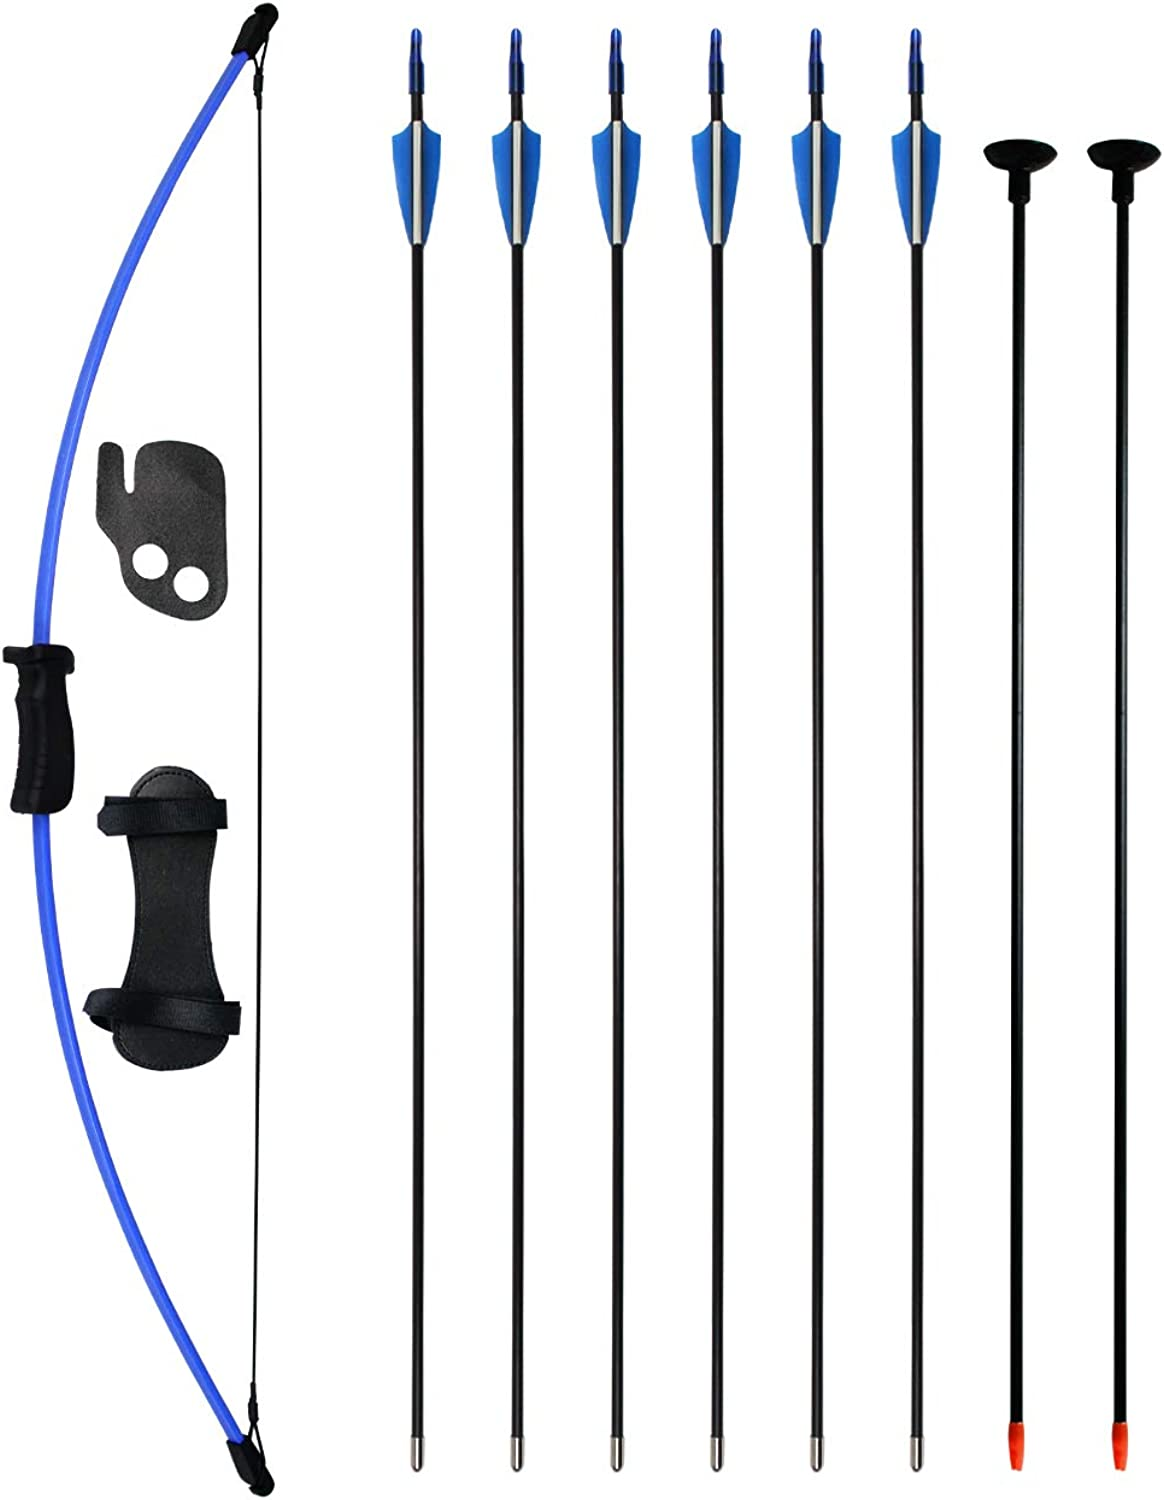 SinoArt Bow and Arrow Set for Teens Outdoor Sports Game Hunting Gift Archery Bow Set with 8 Arrows 16 Lb